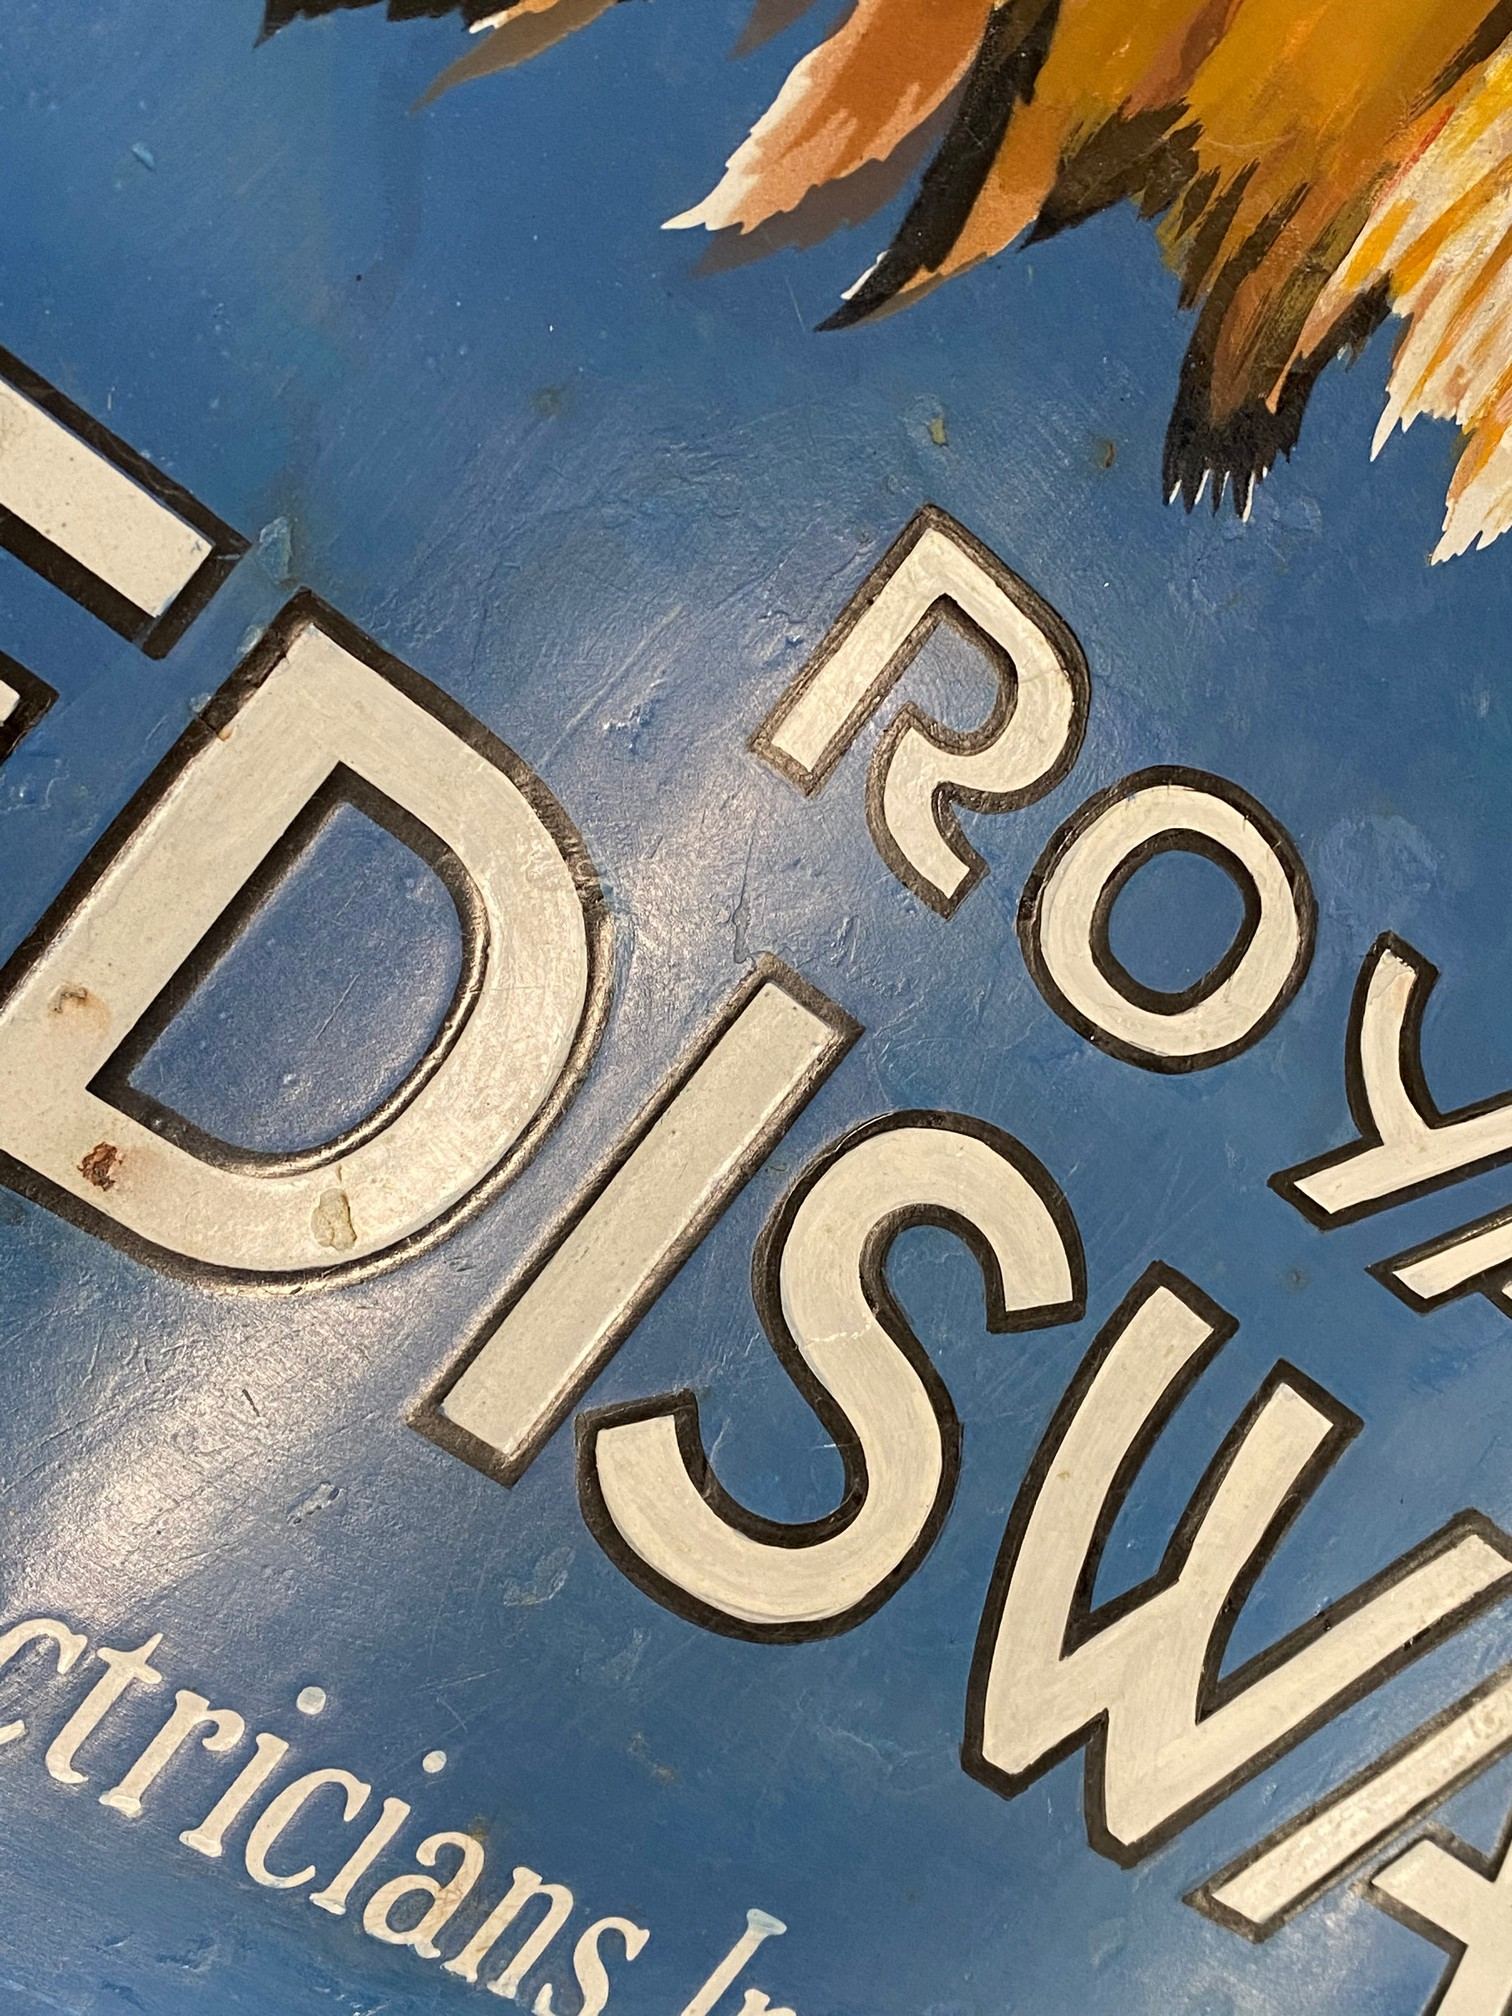 A Royal 'Ediswan' pictorial enamel sign depicting a lion's head, with a bulb in his mouth, restored, - Image 2 of 7